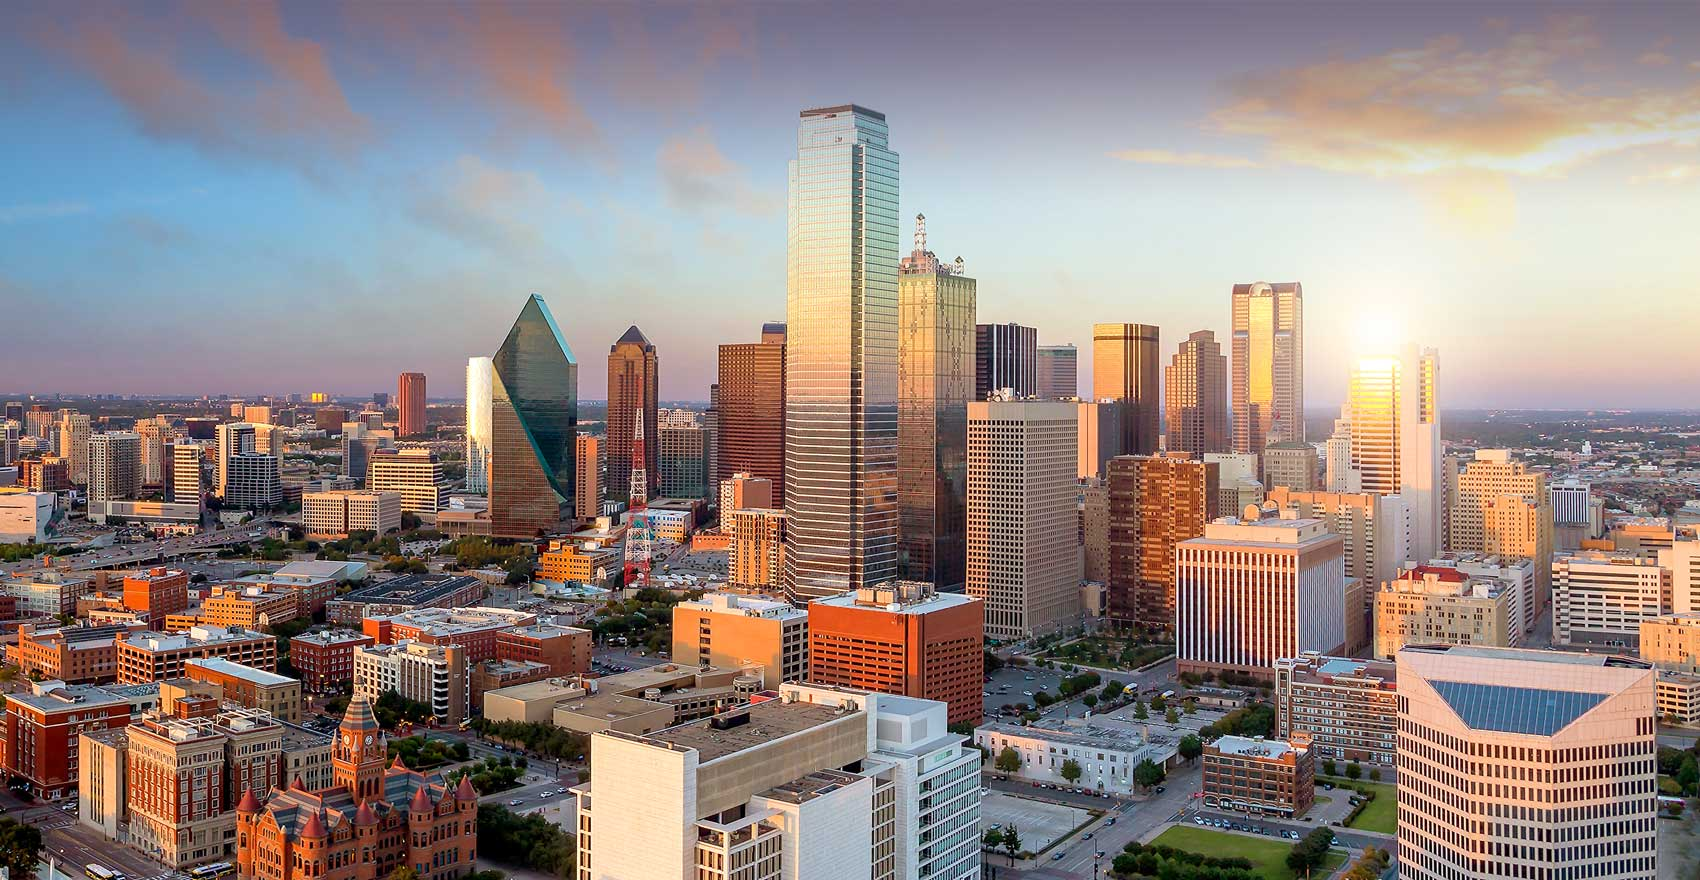 Photograph of the city of Dallas, Texas